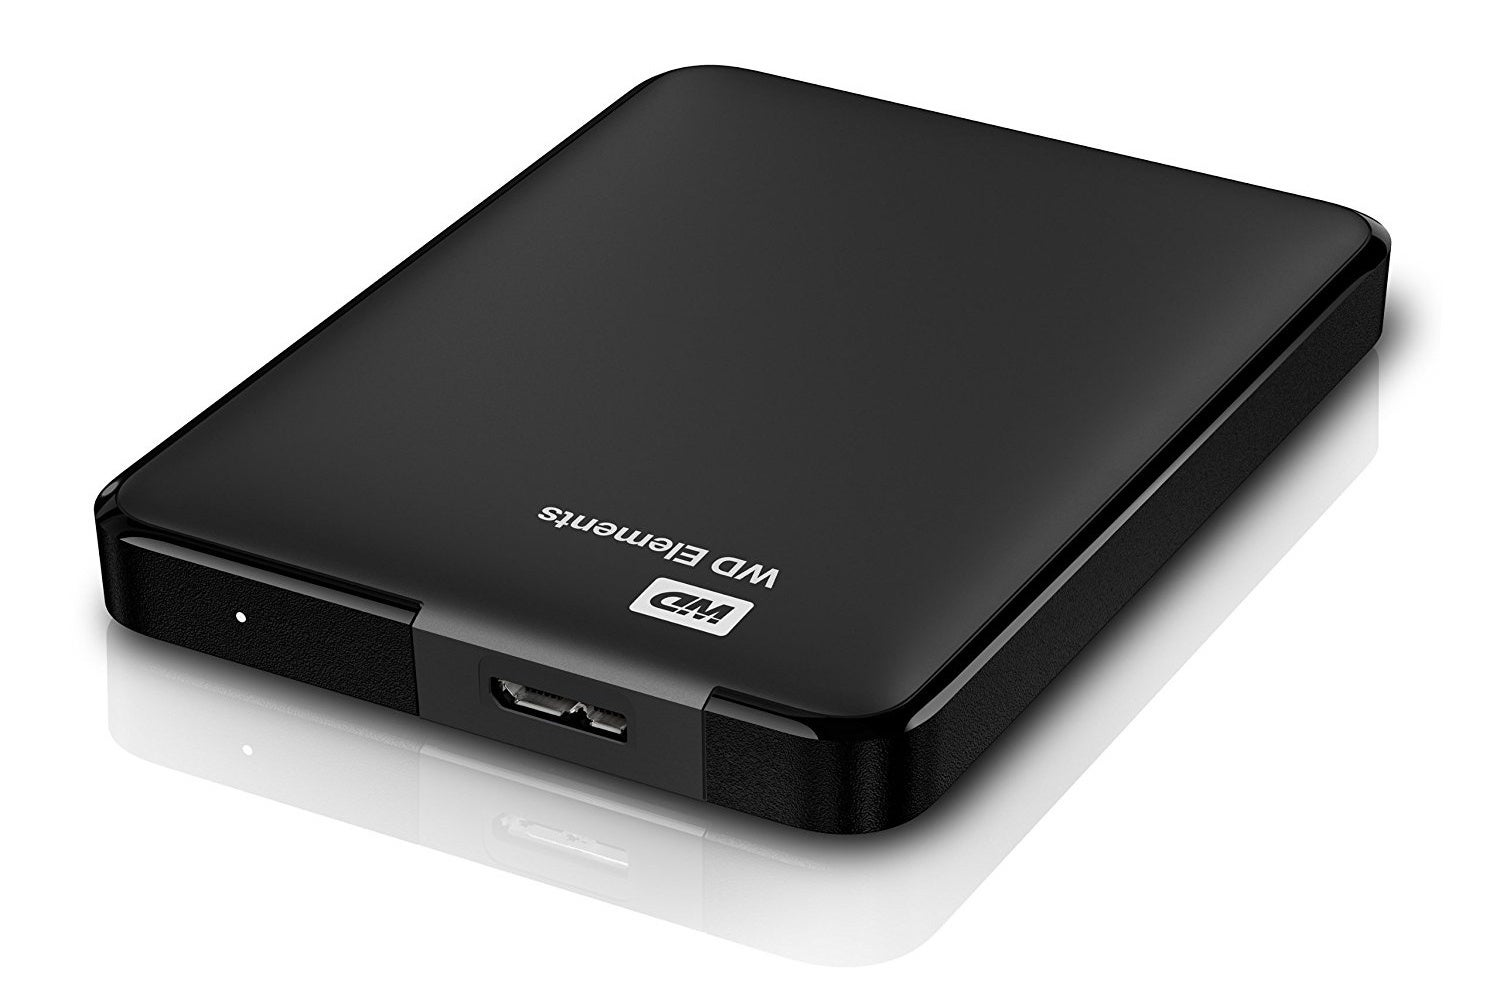 d6fac2f525e Amazon is selling a 2TB WD external hard drive for just  58.49 ...